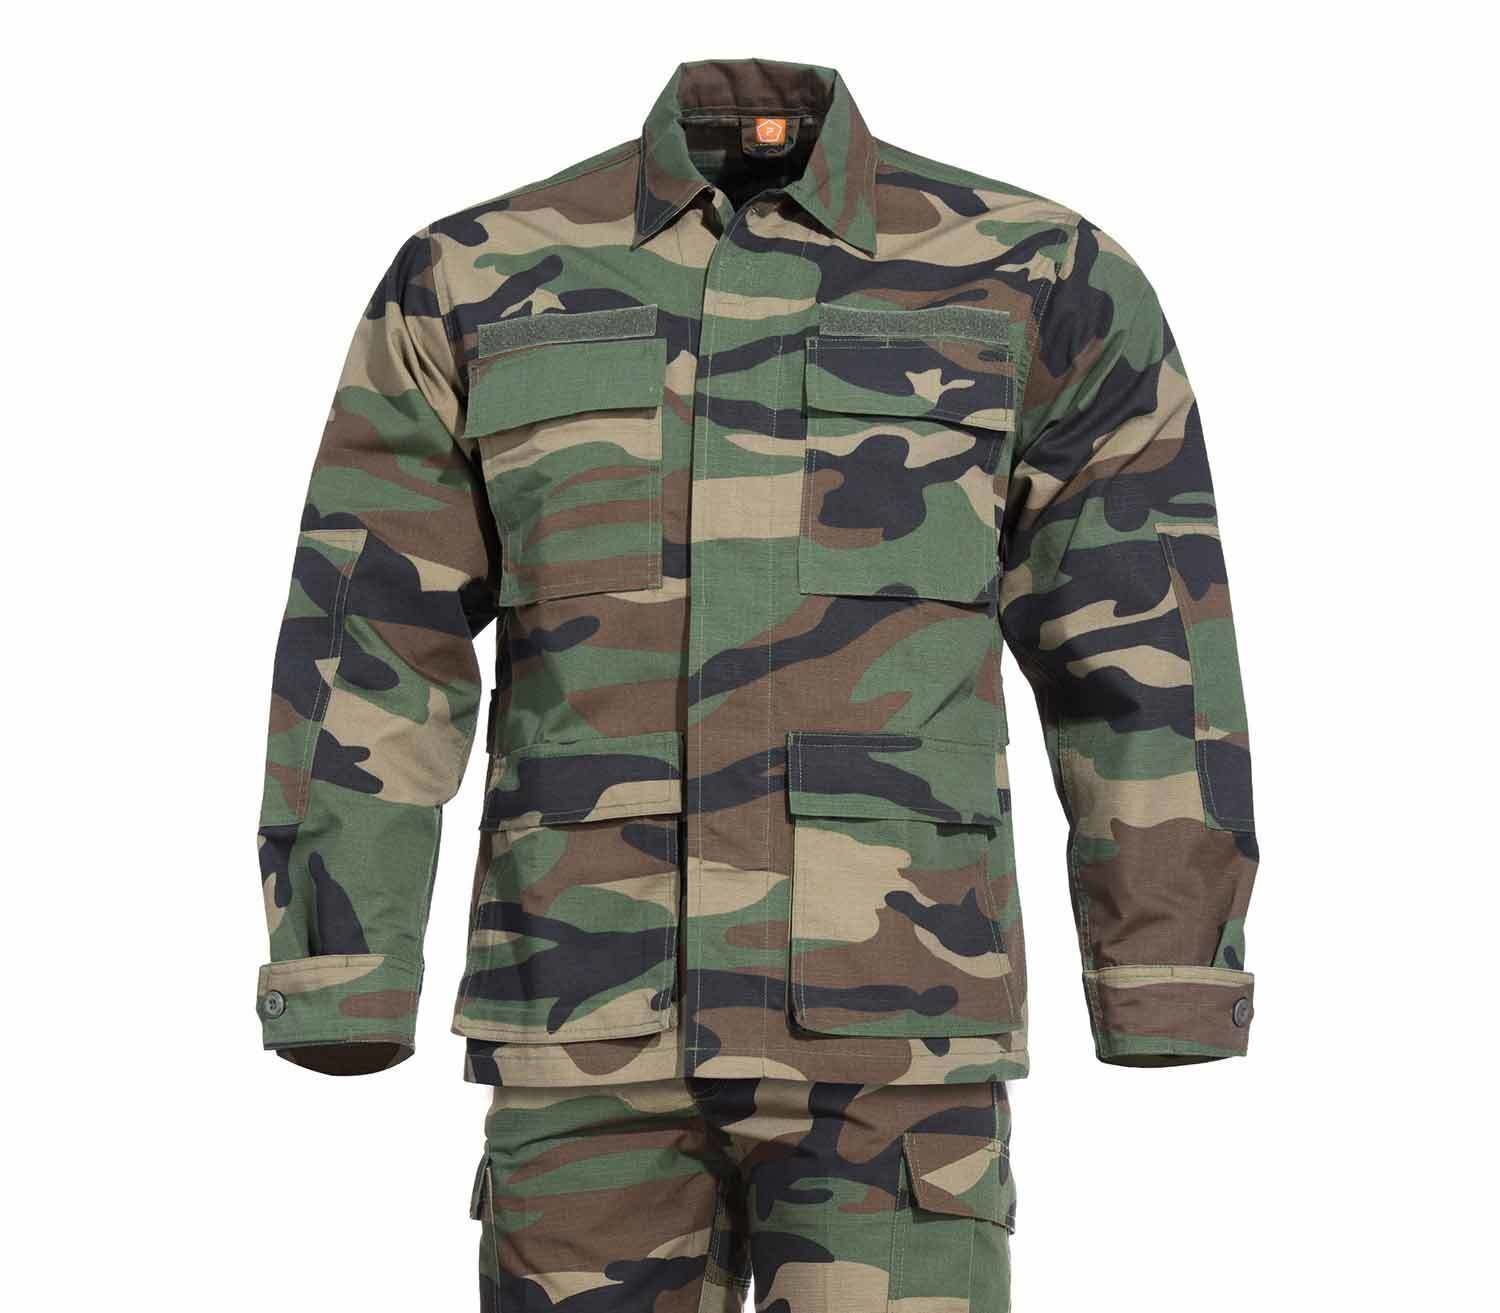 Set-BDU-2-Camo-Woodland.jpg